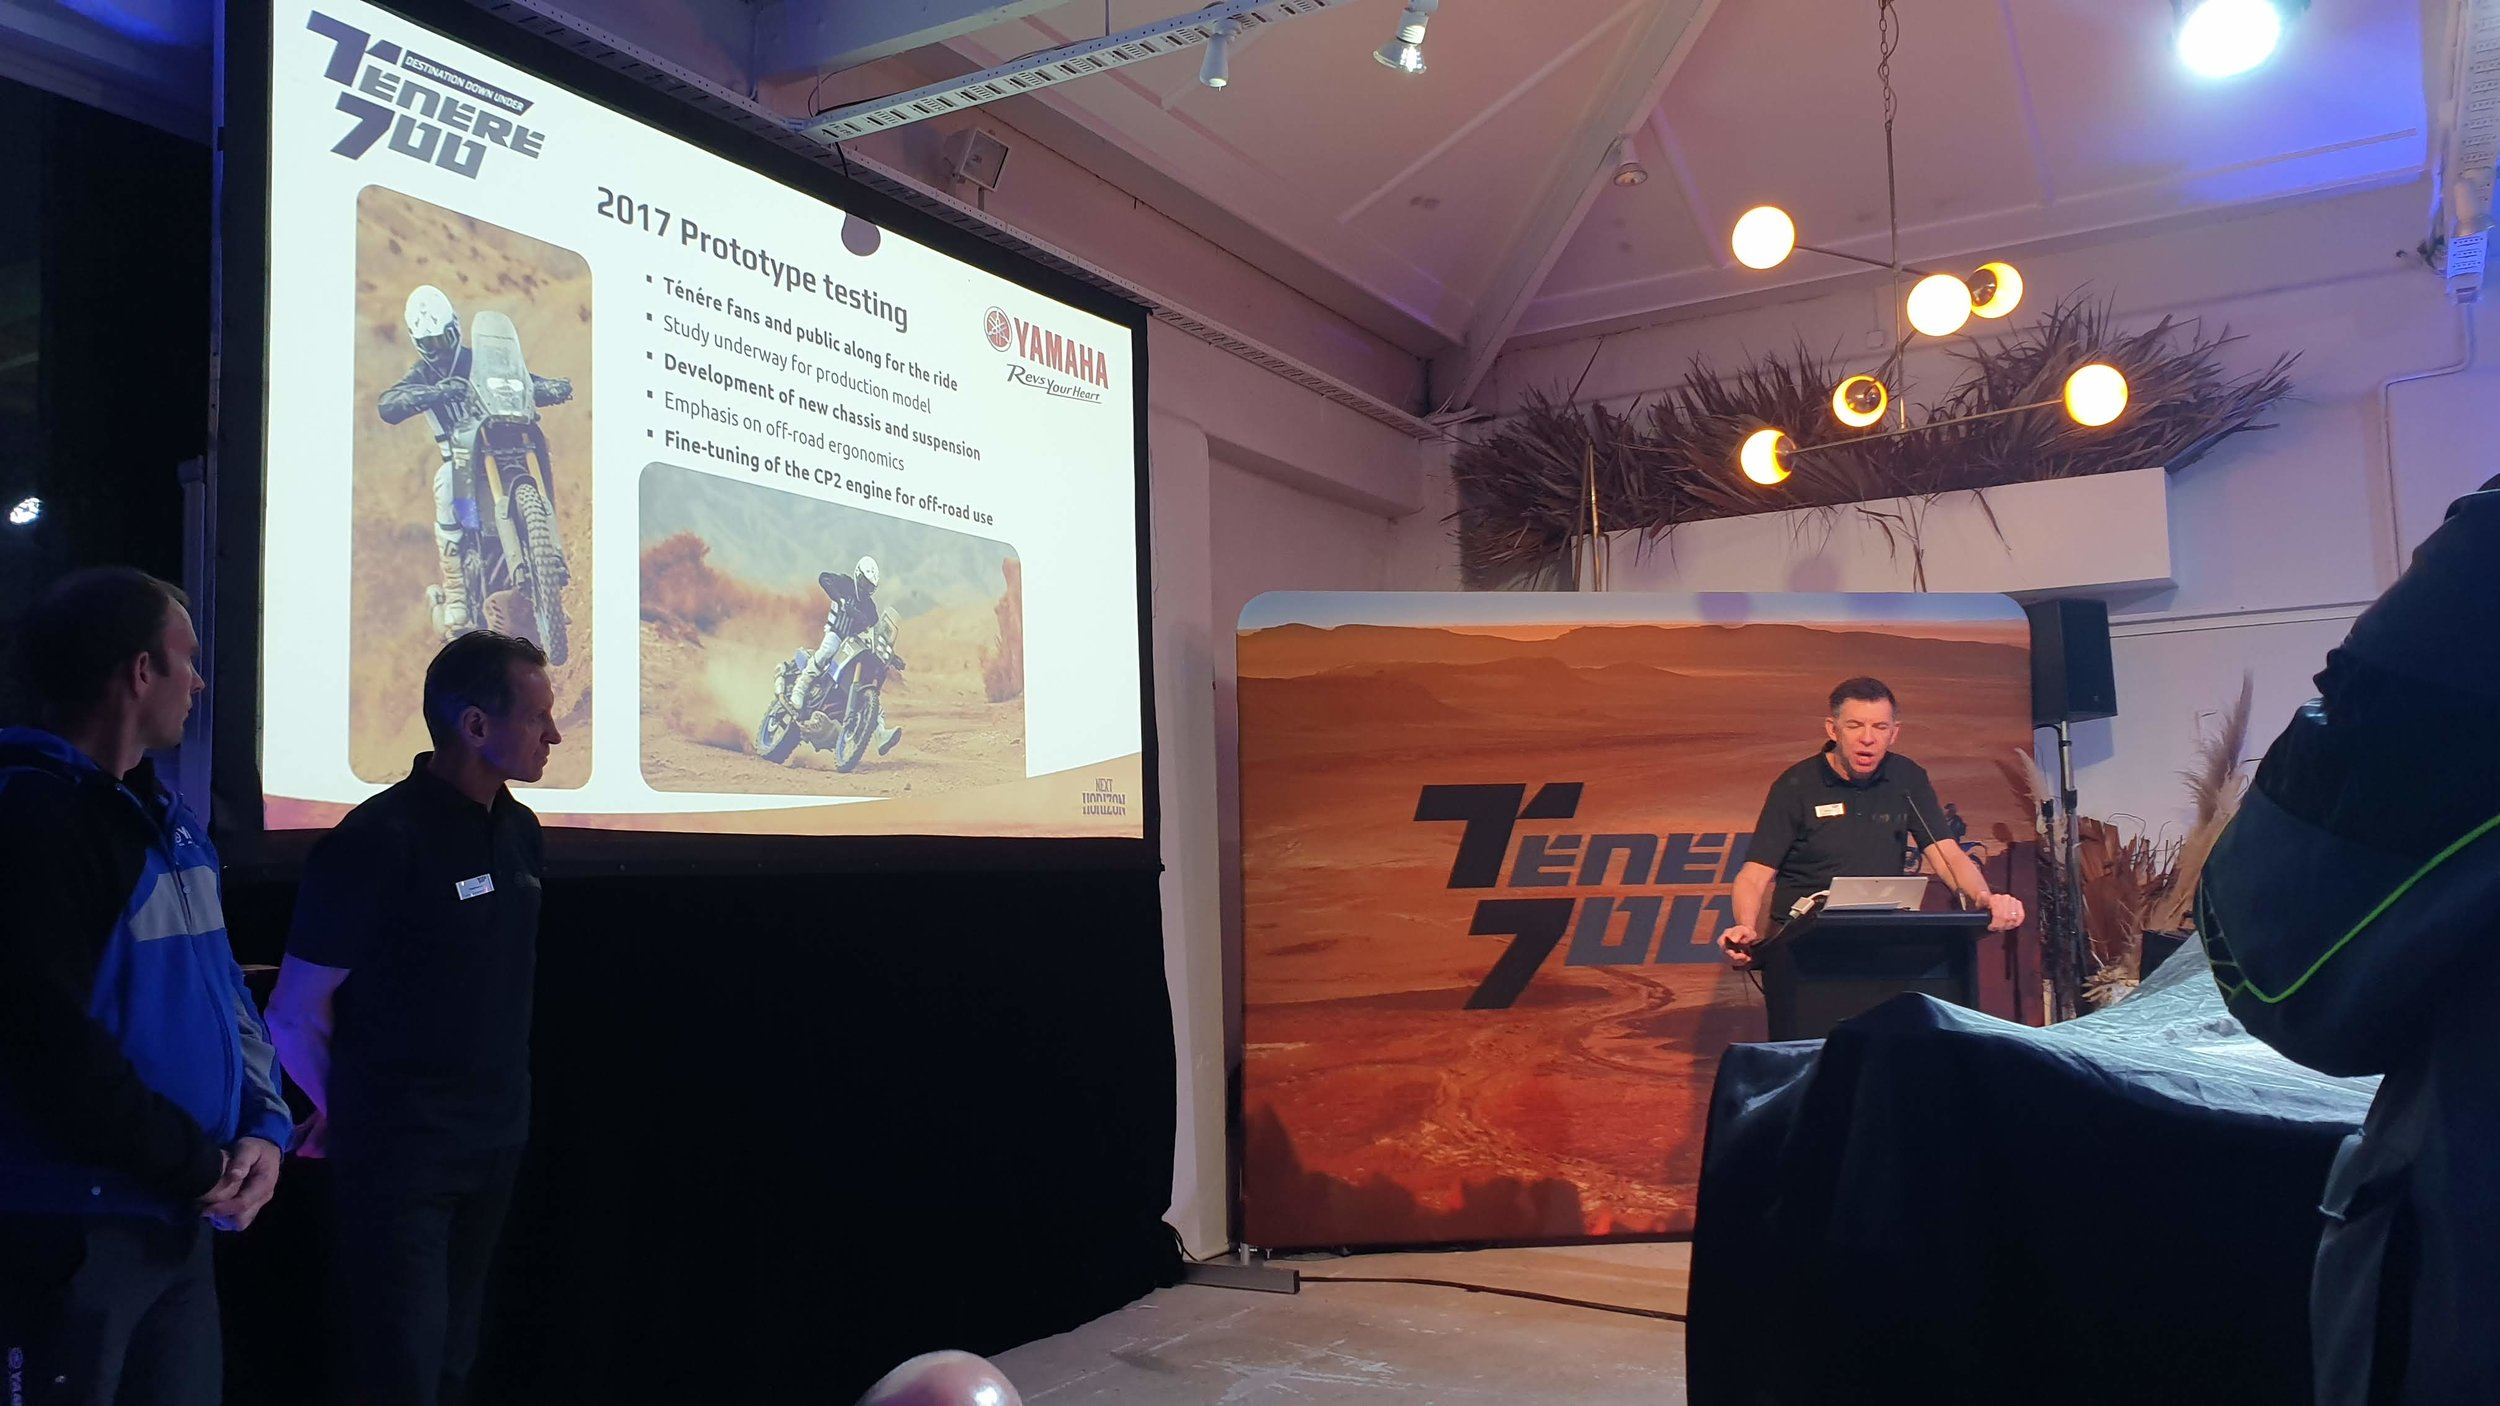 Opening the show saw the Yamaha team give a detailed presentation around how and why the T7 was developed, and its heritage back to the original Tenere that started their Adventure game back in the early 80s.